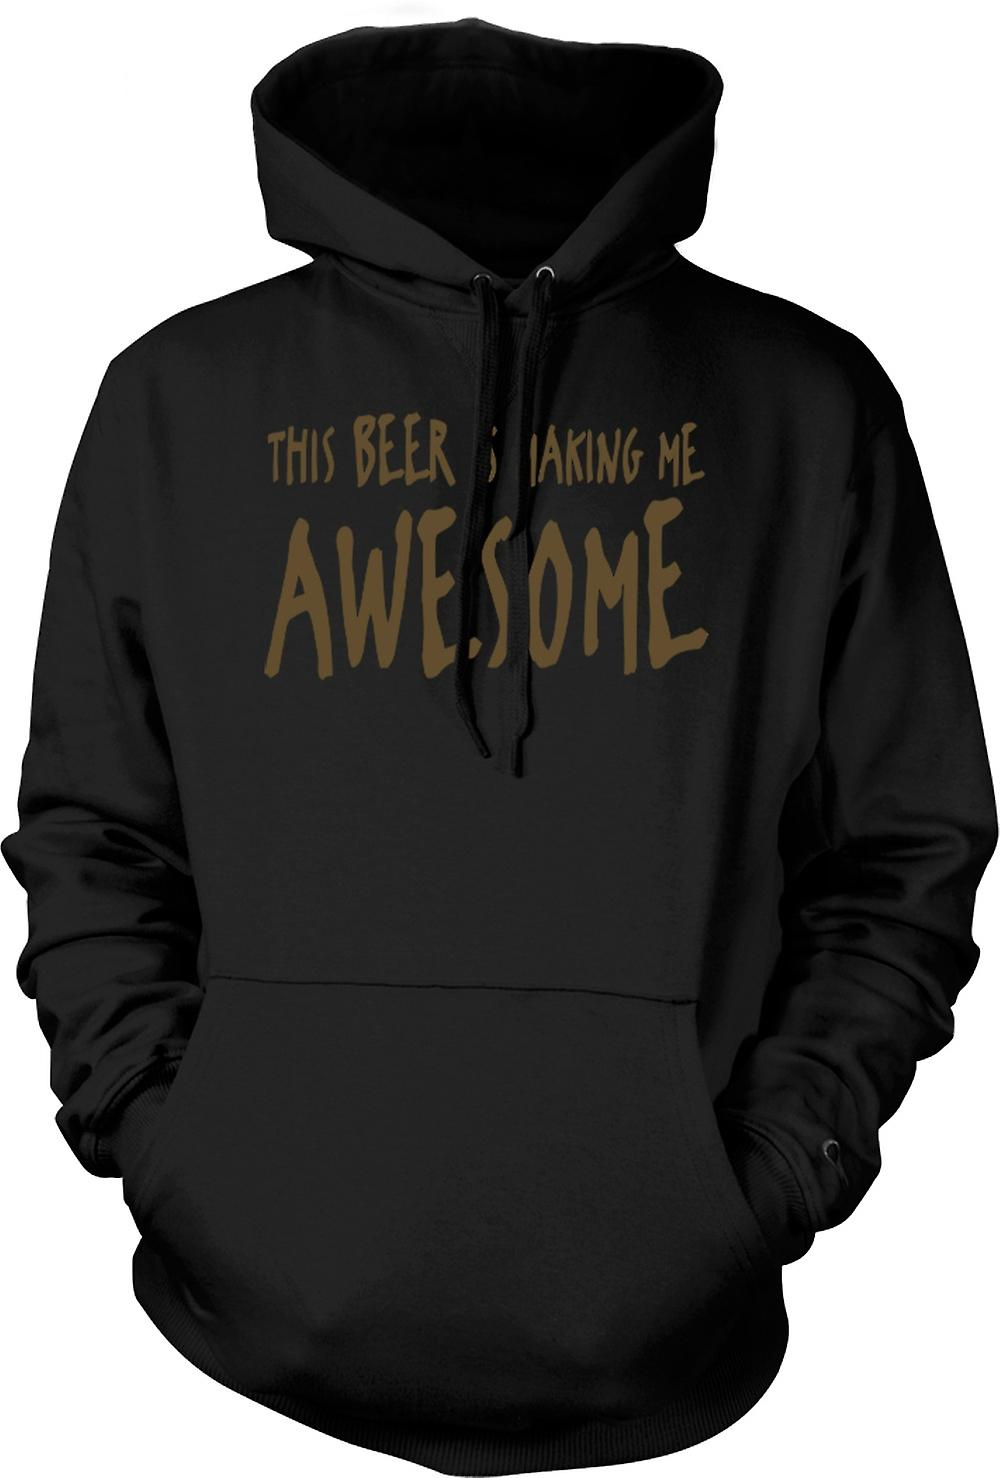 Mens Hoodie - This Beer Is Making Me Awesome - Quote